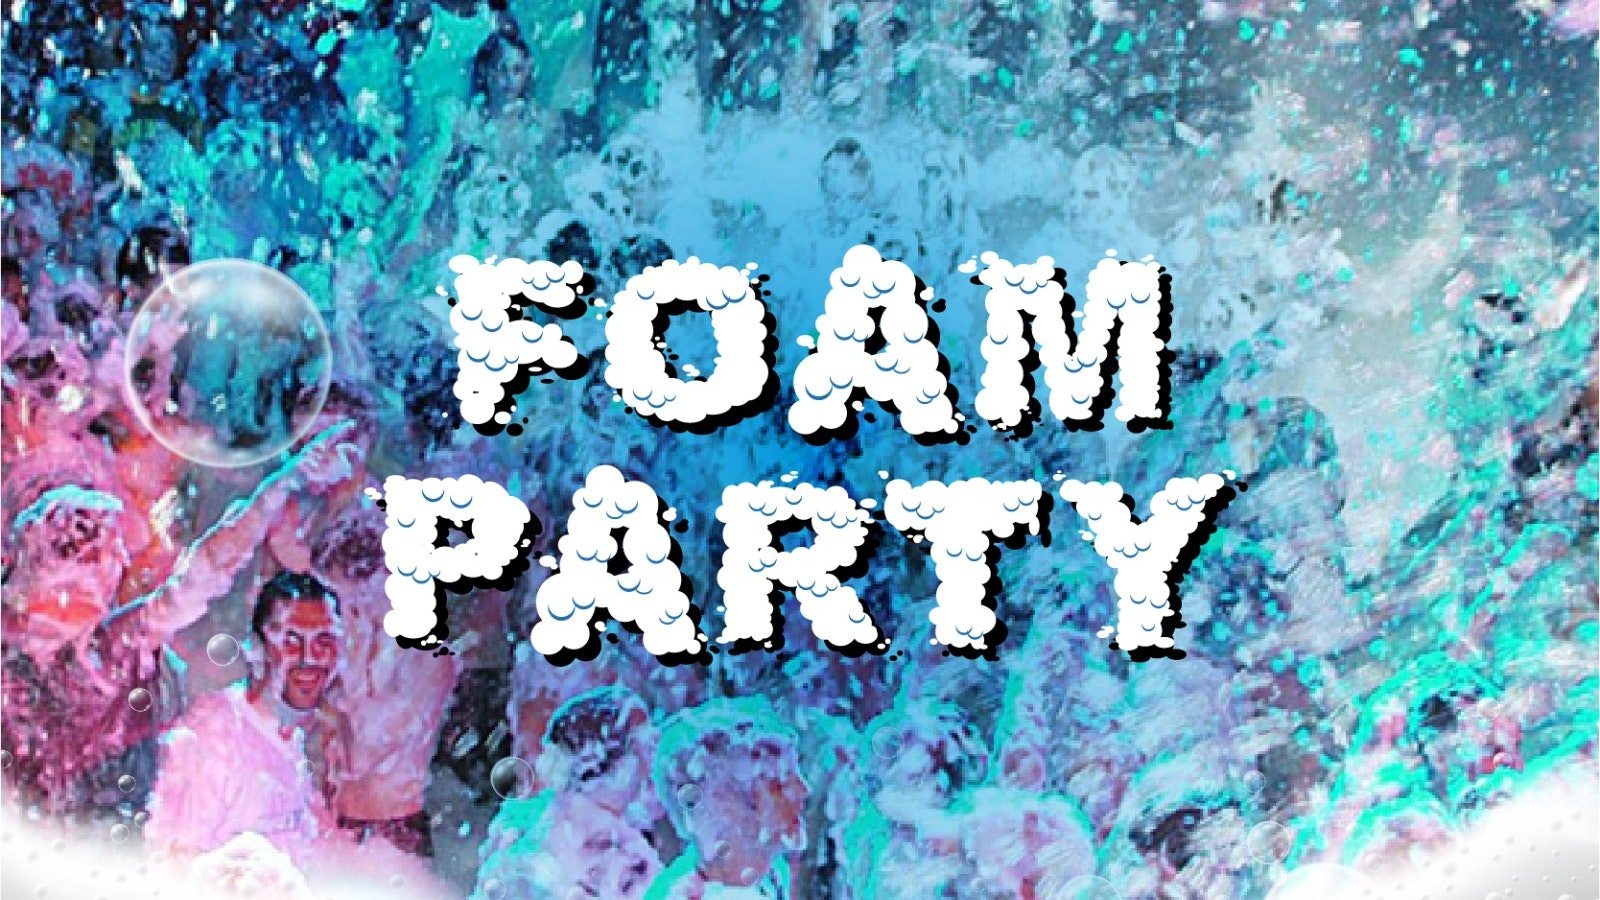 FOAM Party – Wednesday 29th September